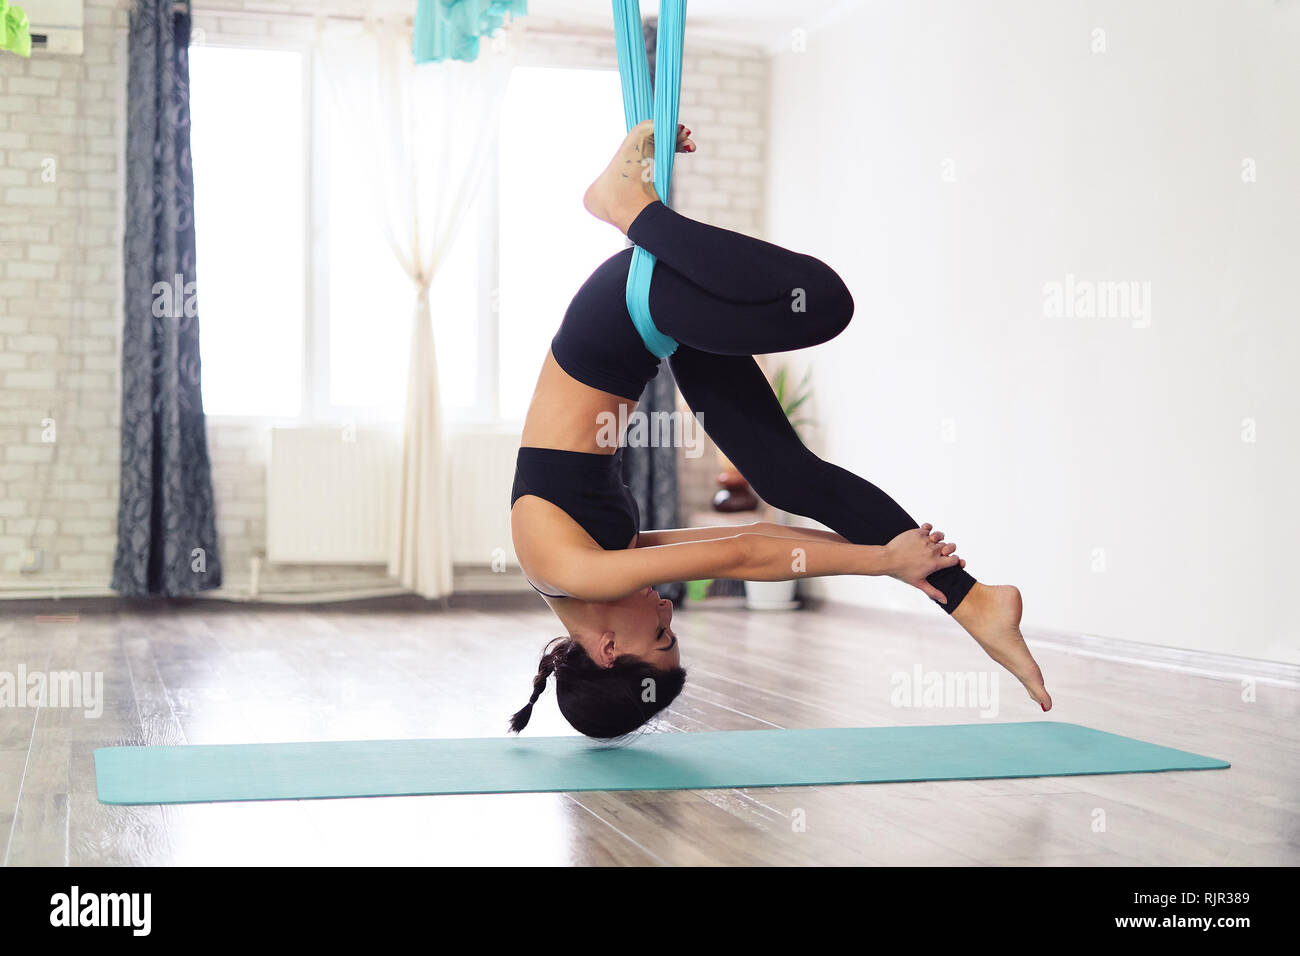 Full length of fit young woman doing antigravity yoga exercises in studio Stock Photo